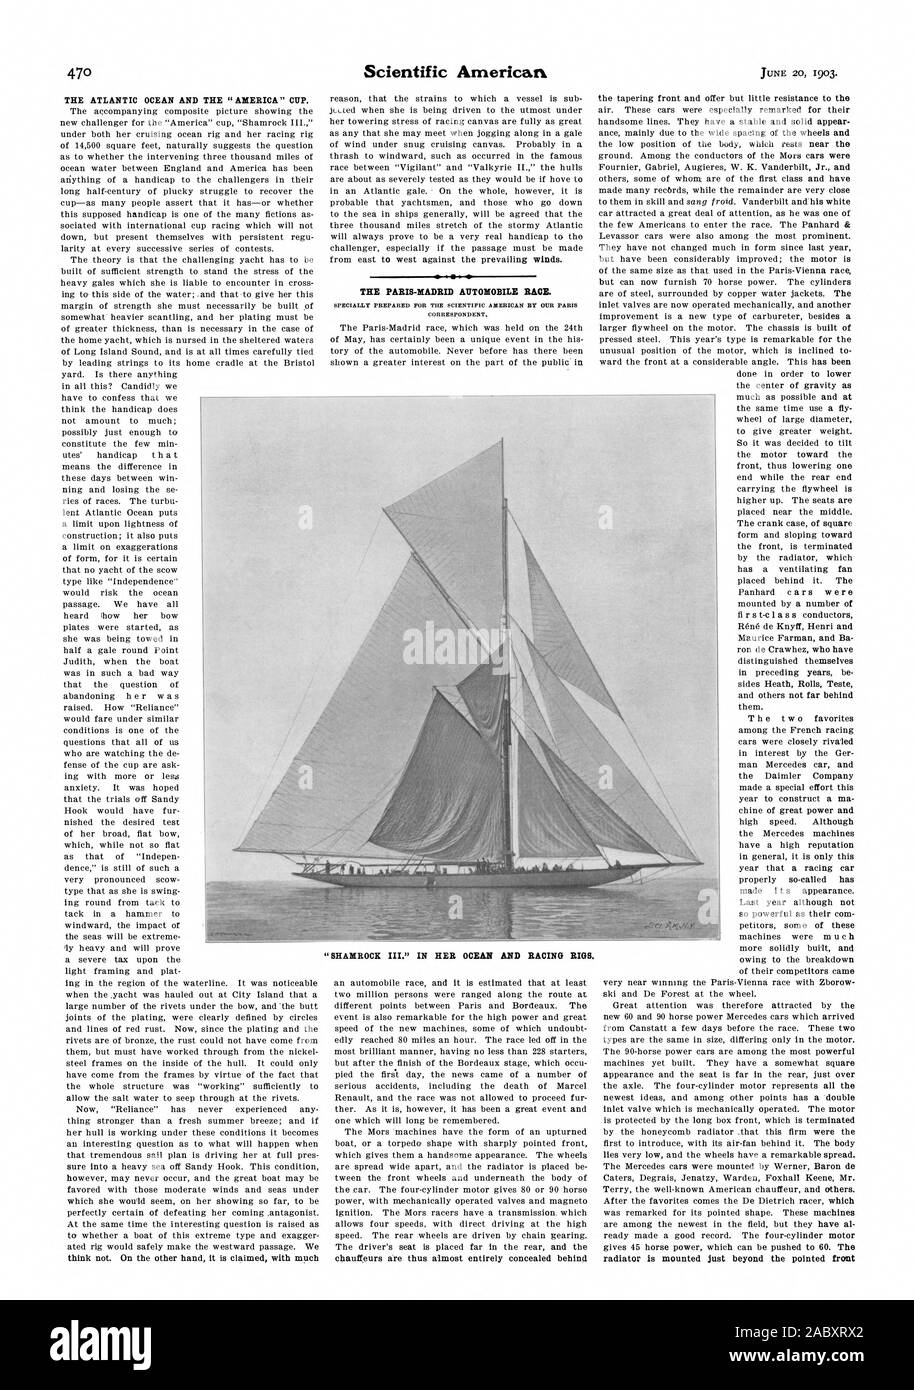 THE ATLANTIC OCEAN AND THE 'AMERICA' CUP. THE PARIS-MADRID AUTOMOBILE RACE. SPECIALLY PREPARED FOR THE SCIENTIFIC AMERICAN BY OUR PARIS CORRESPONDENT. 'SHAMROCK III.' IN HER OCEAN AND RACING RIGS. radiator is mounted just beyond the pointed front, 1903-06-20 Stock Photo